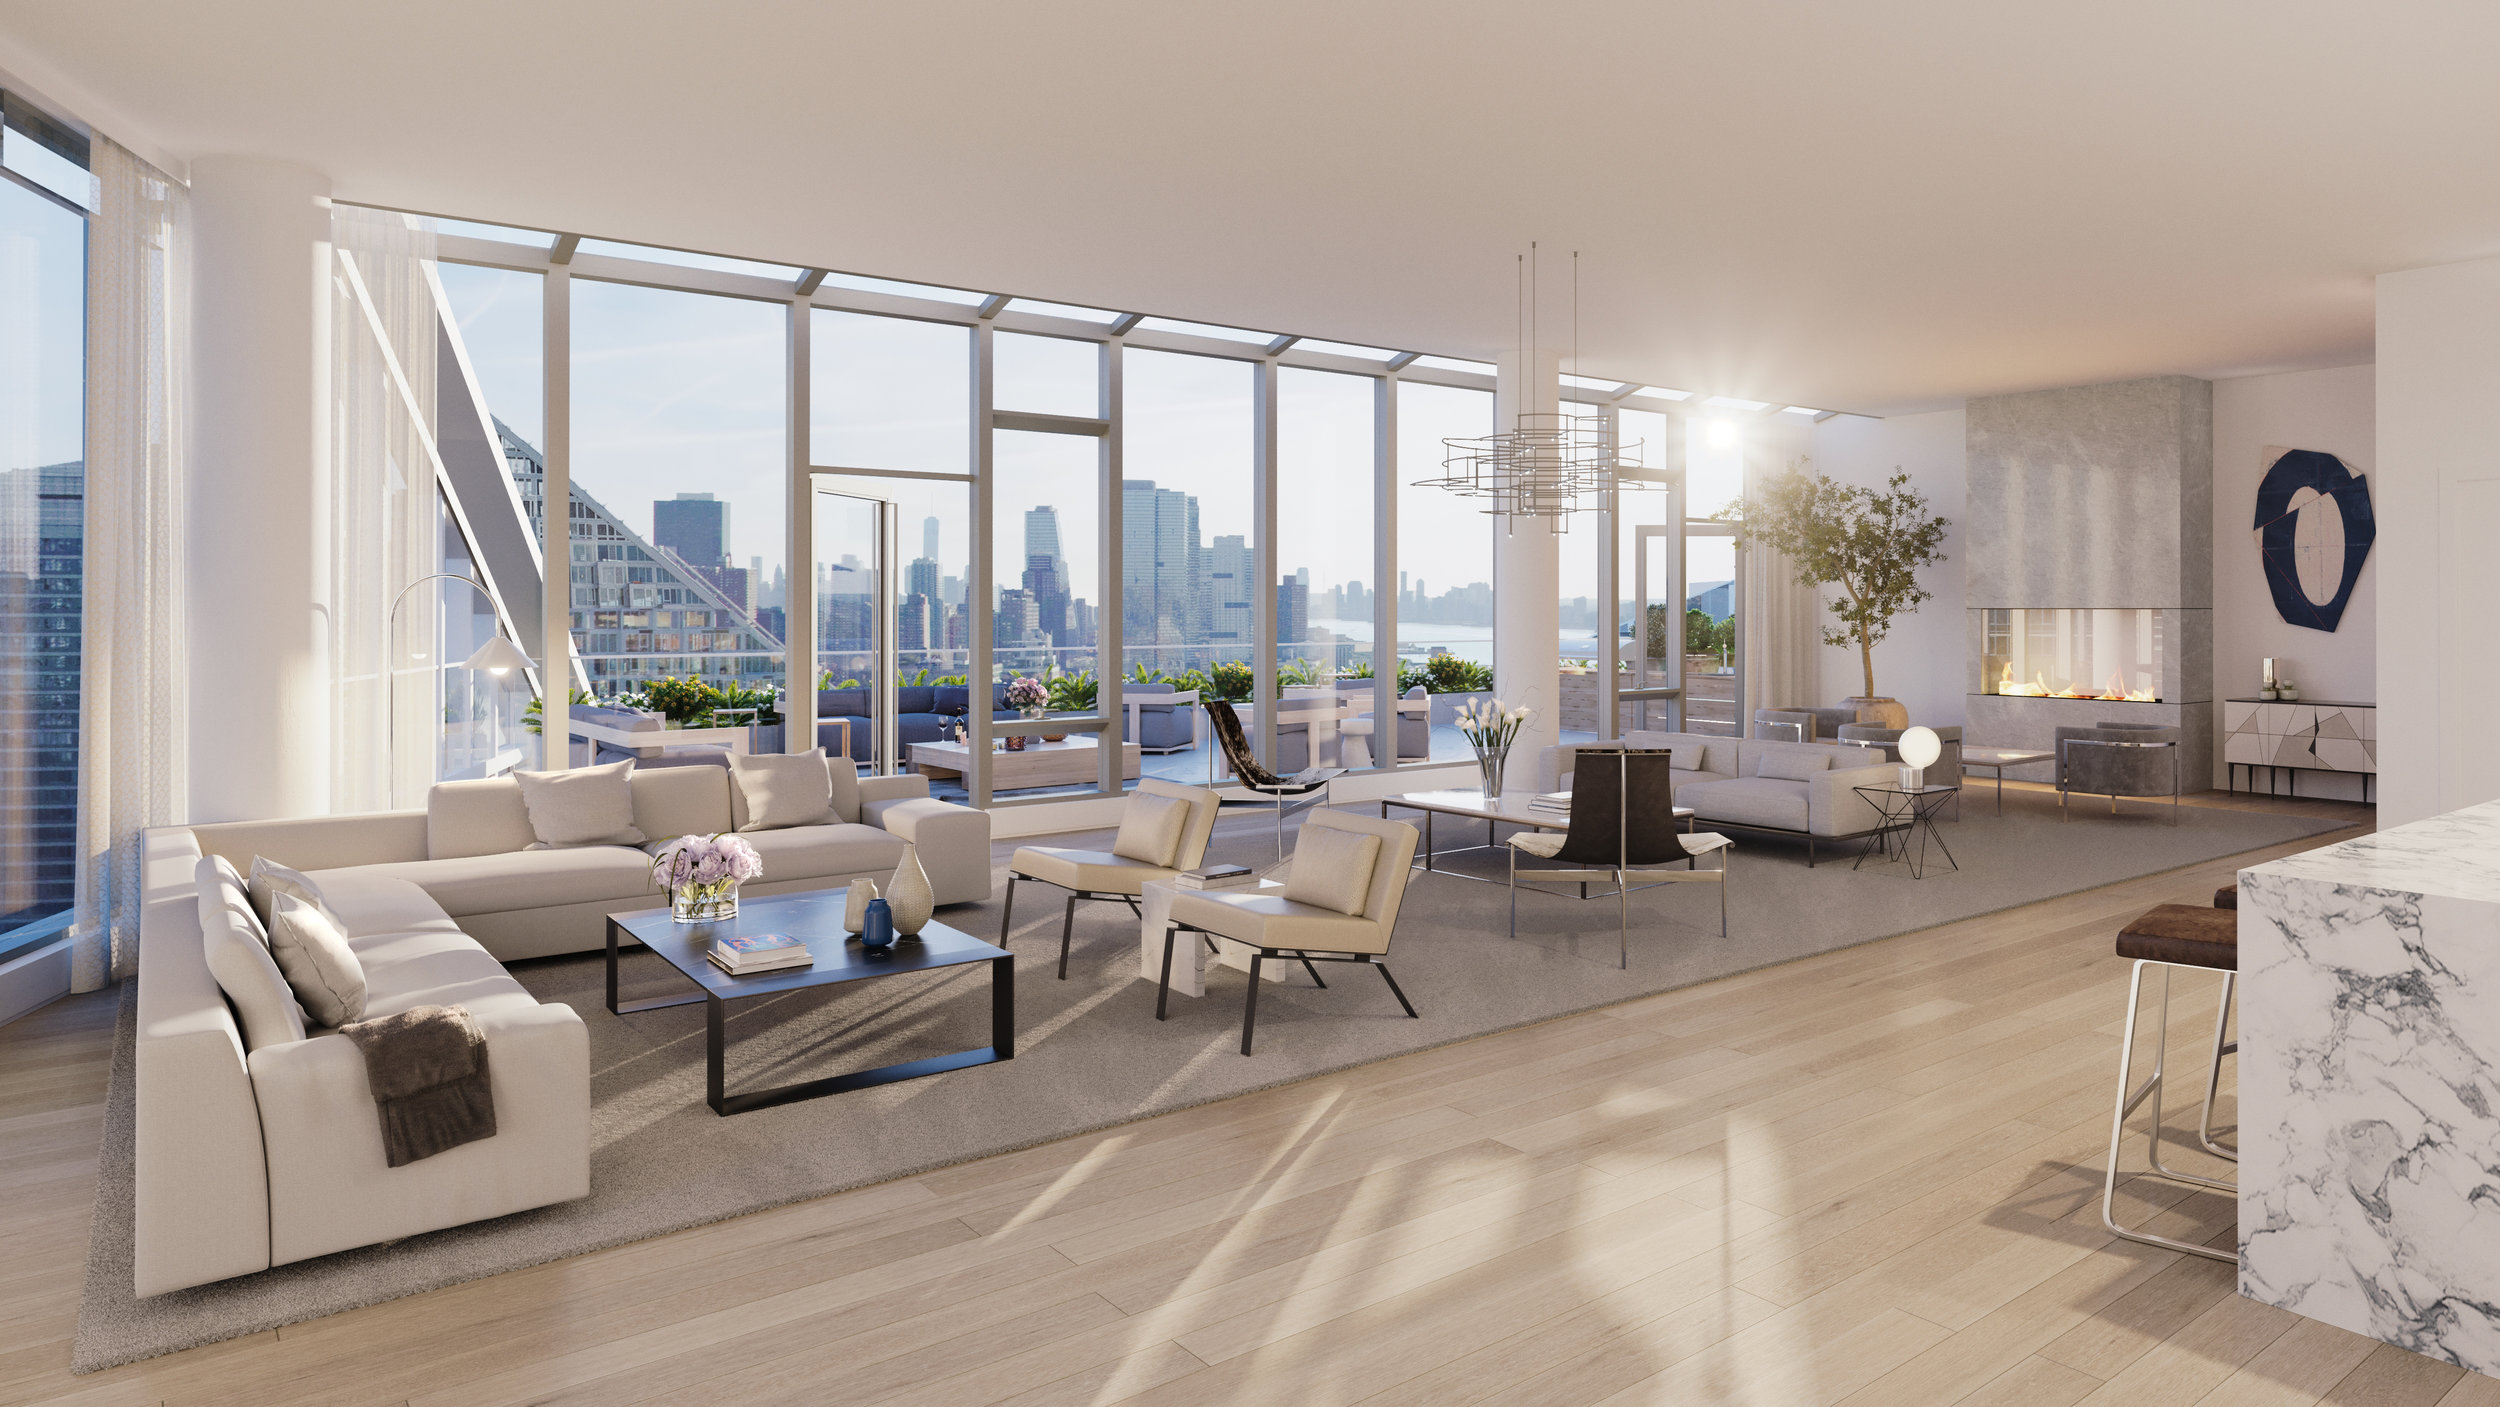 The First Penthouse At The Upper West Side's Waterline Square Revealed Asking $17.25